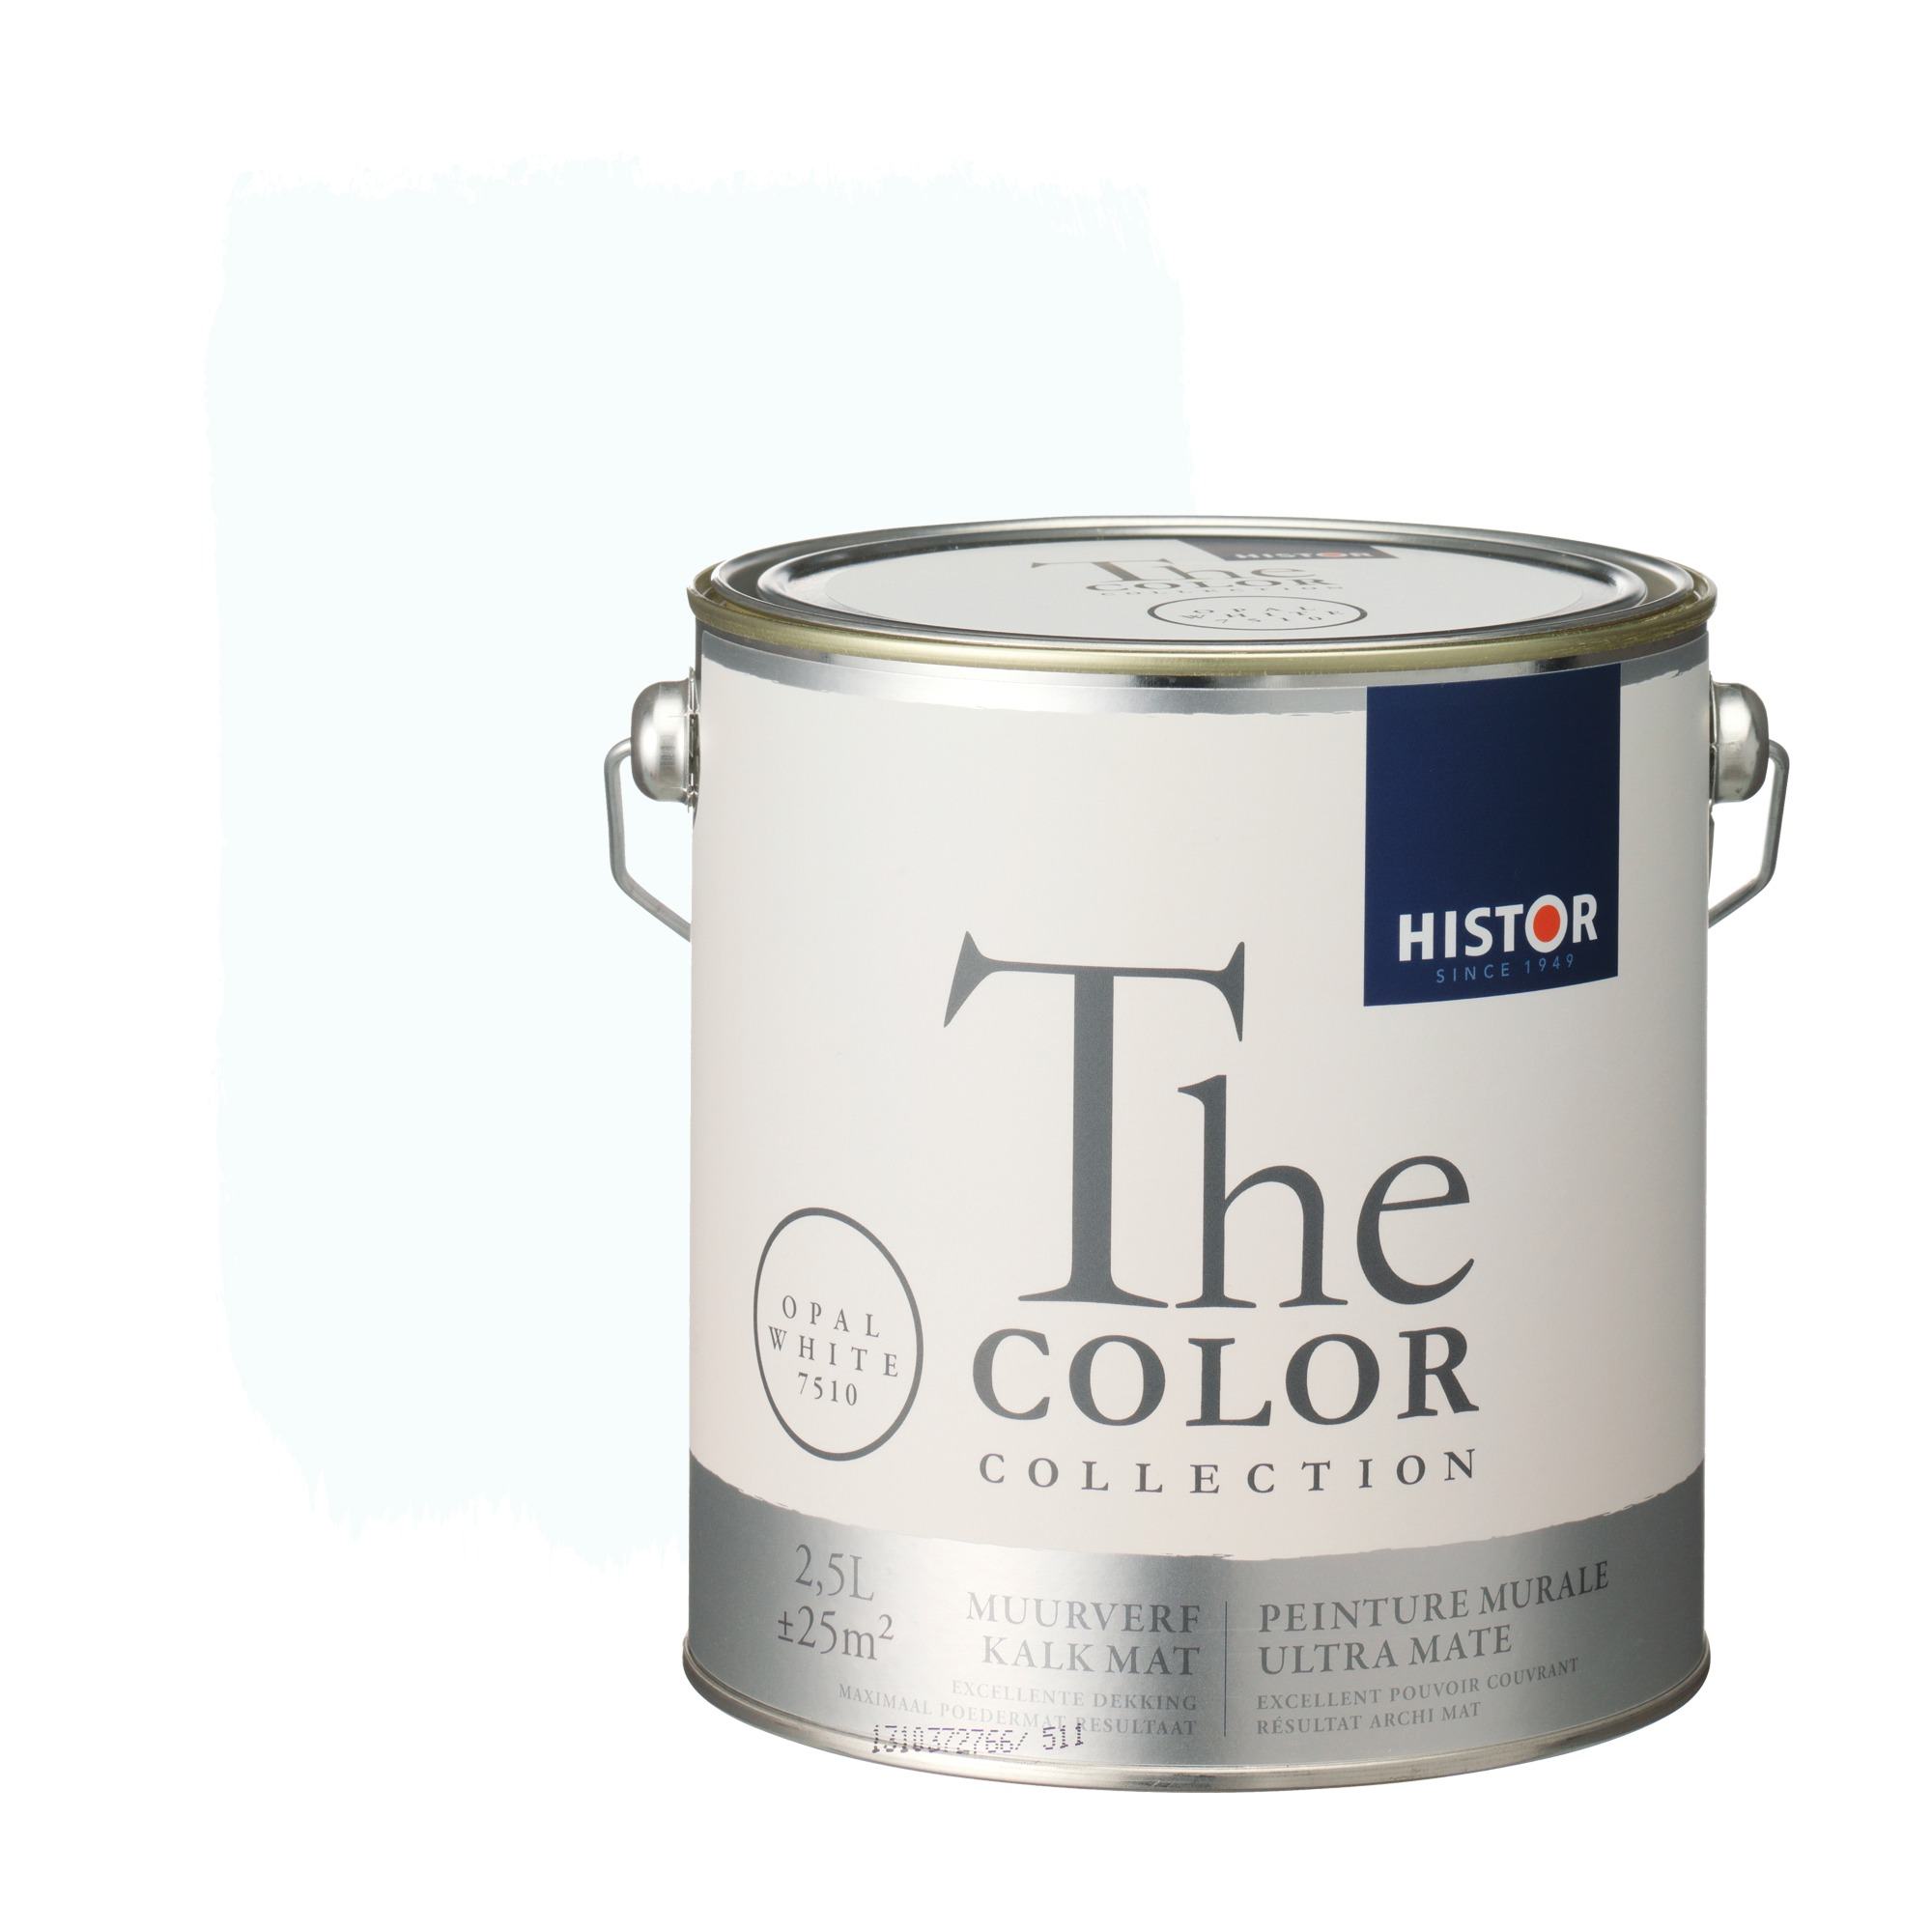 Histor the color collection muurverf kalkmat opal white 7510 2,5 l